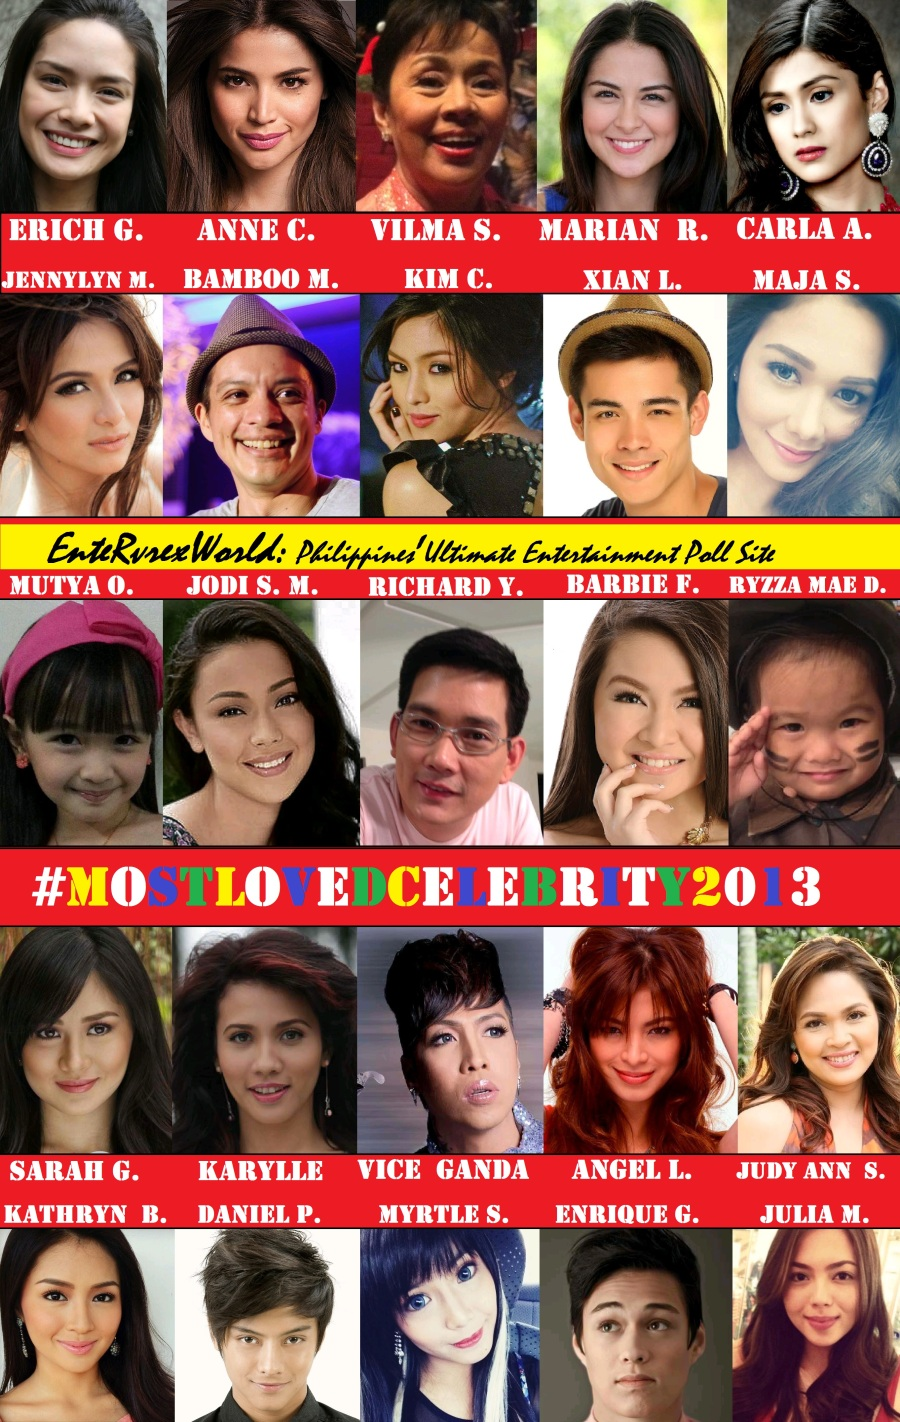 most loved celebrity 2013